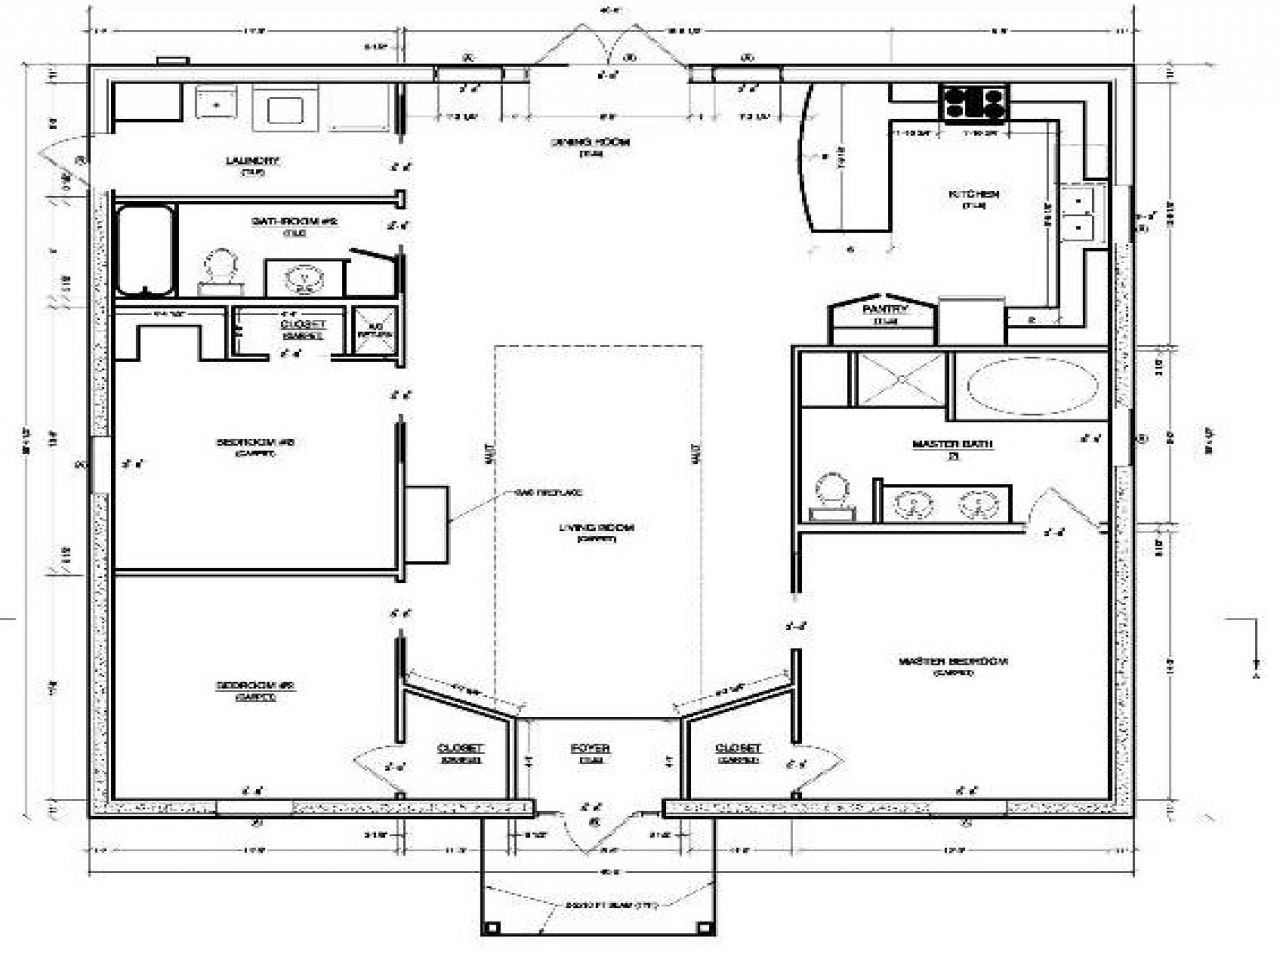 Image result for small house plans under 1000 sq ft Small house